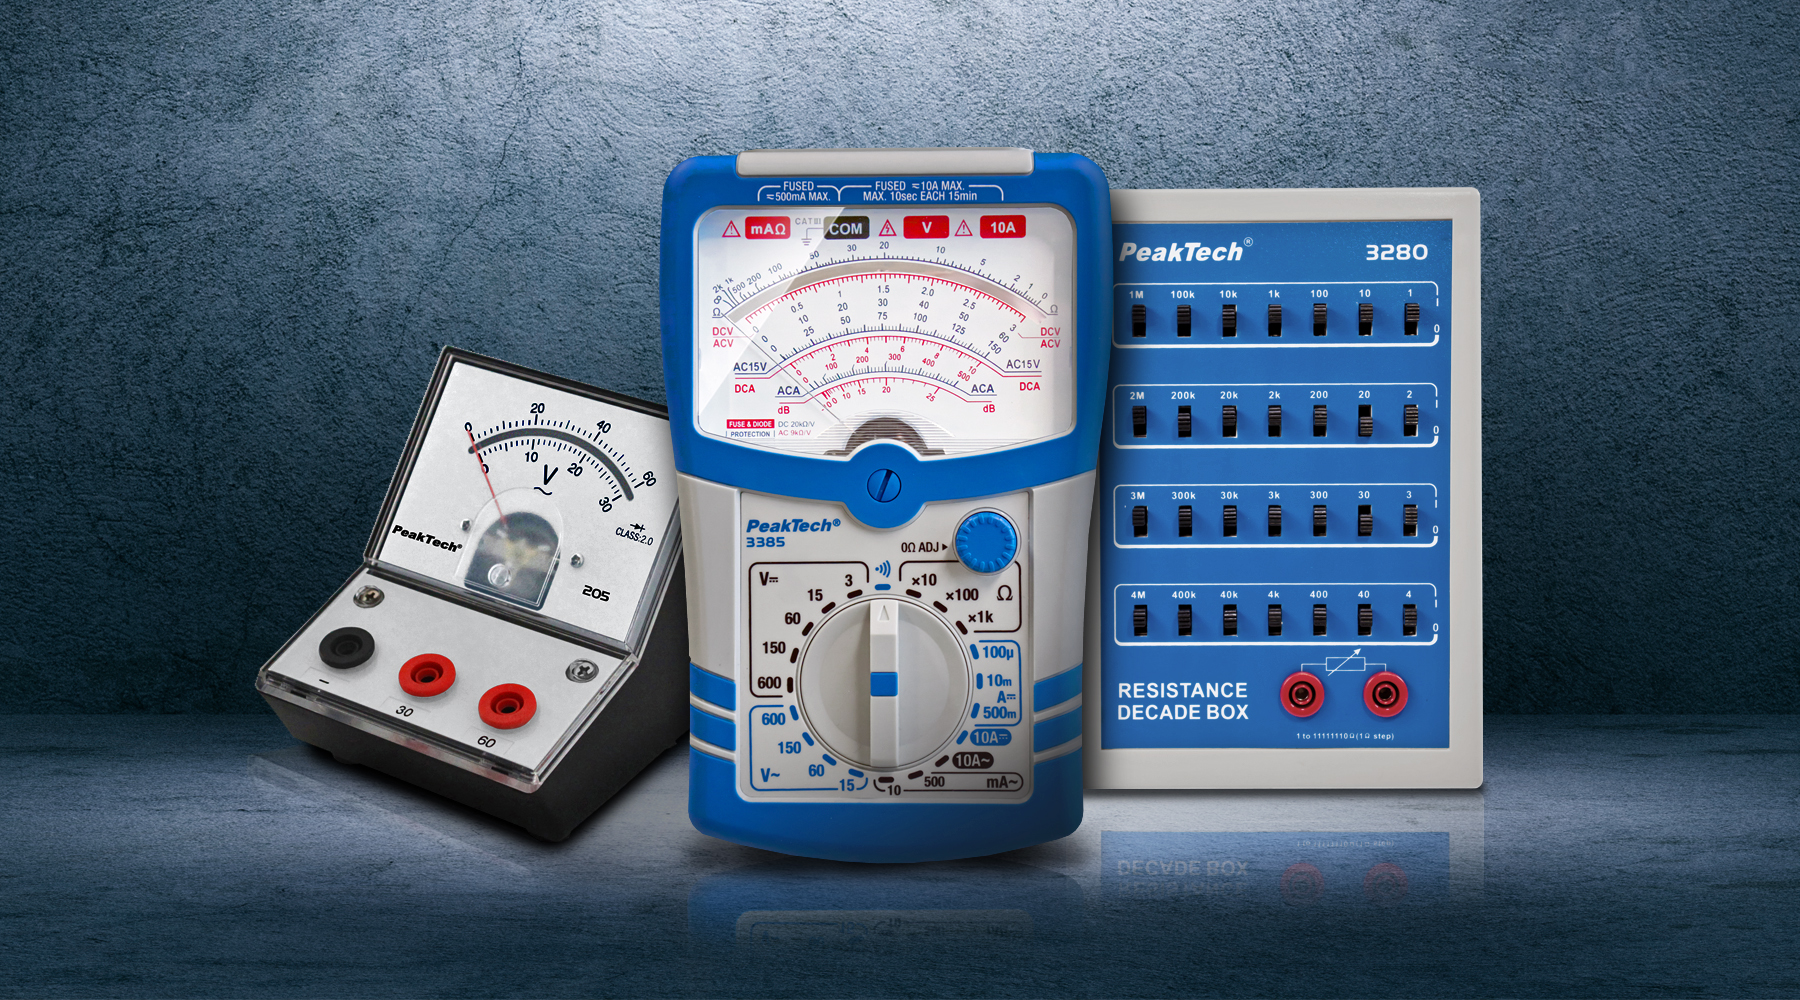 Analog meters & built-in devices